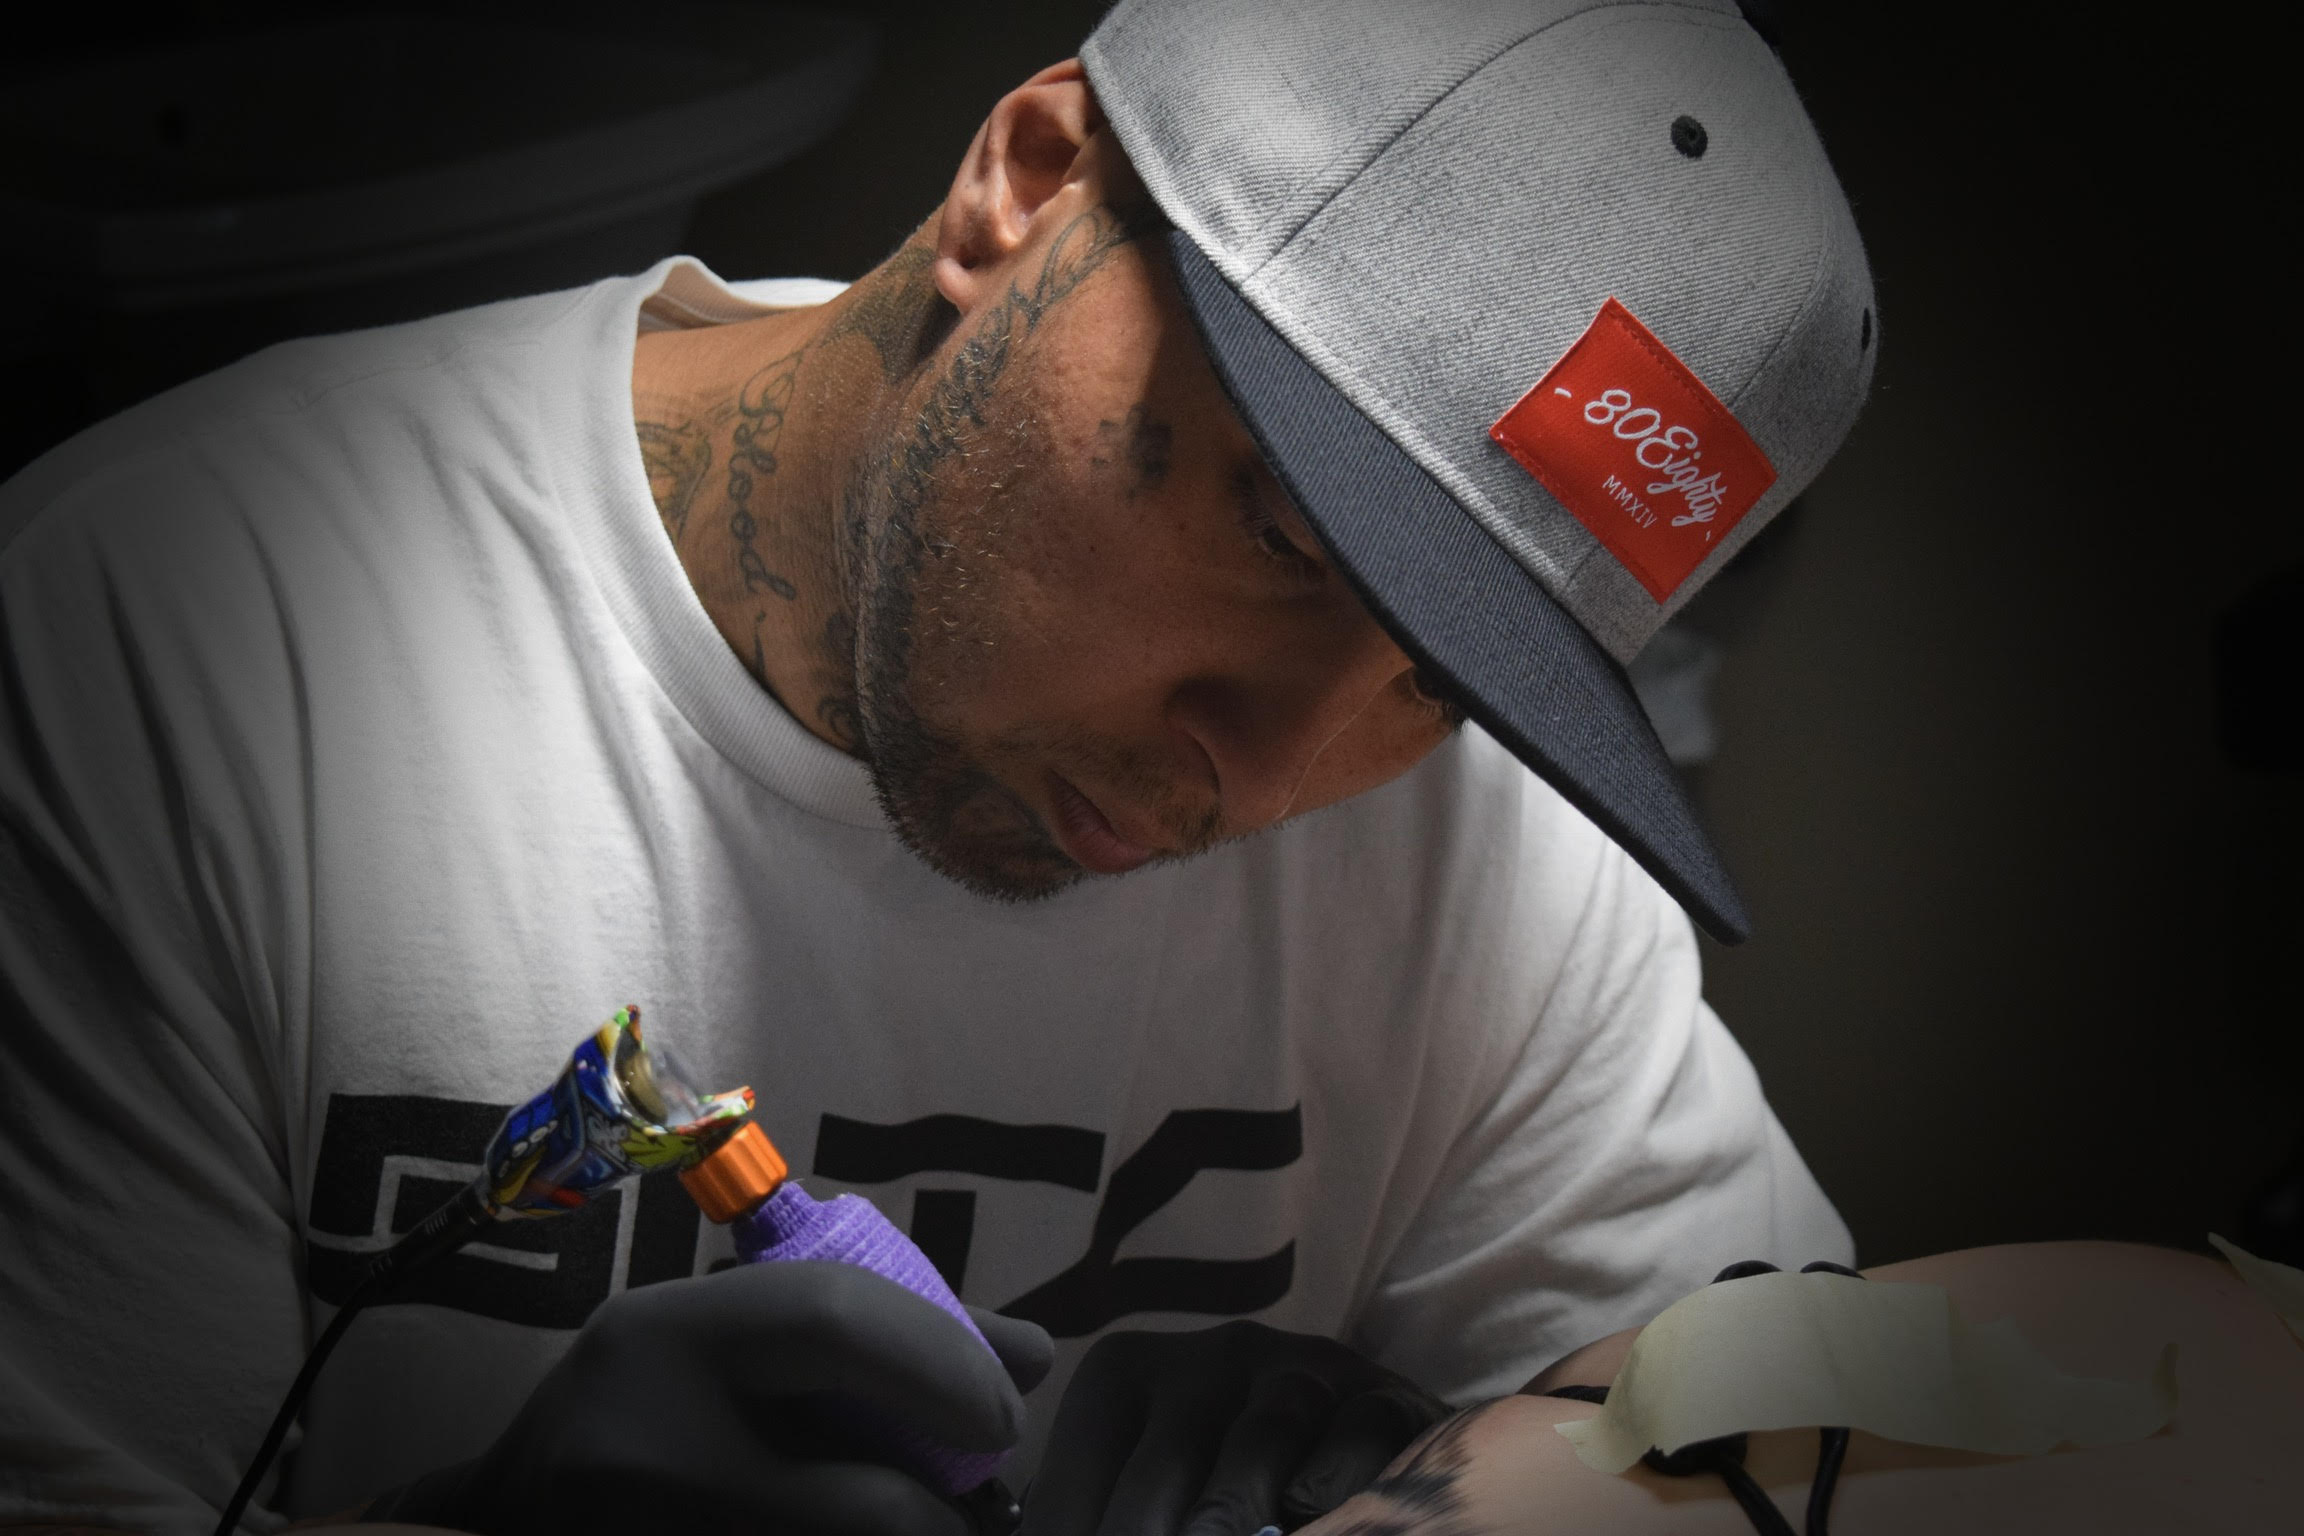 Isaac Luck - Isaac started tattooing professionally in 2008. He specializes in custom freehand lettering, and black and gray realism. He is the owner of Salt Lake Tattoo Company in Salt Lake City Utah. Click his photo to check out more of his work!